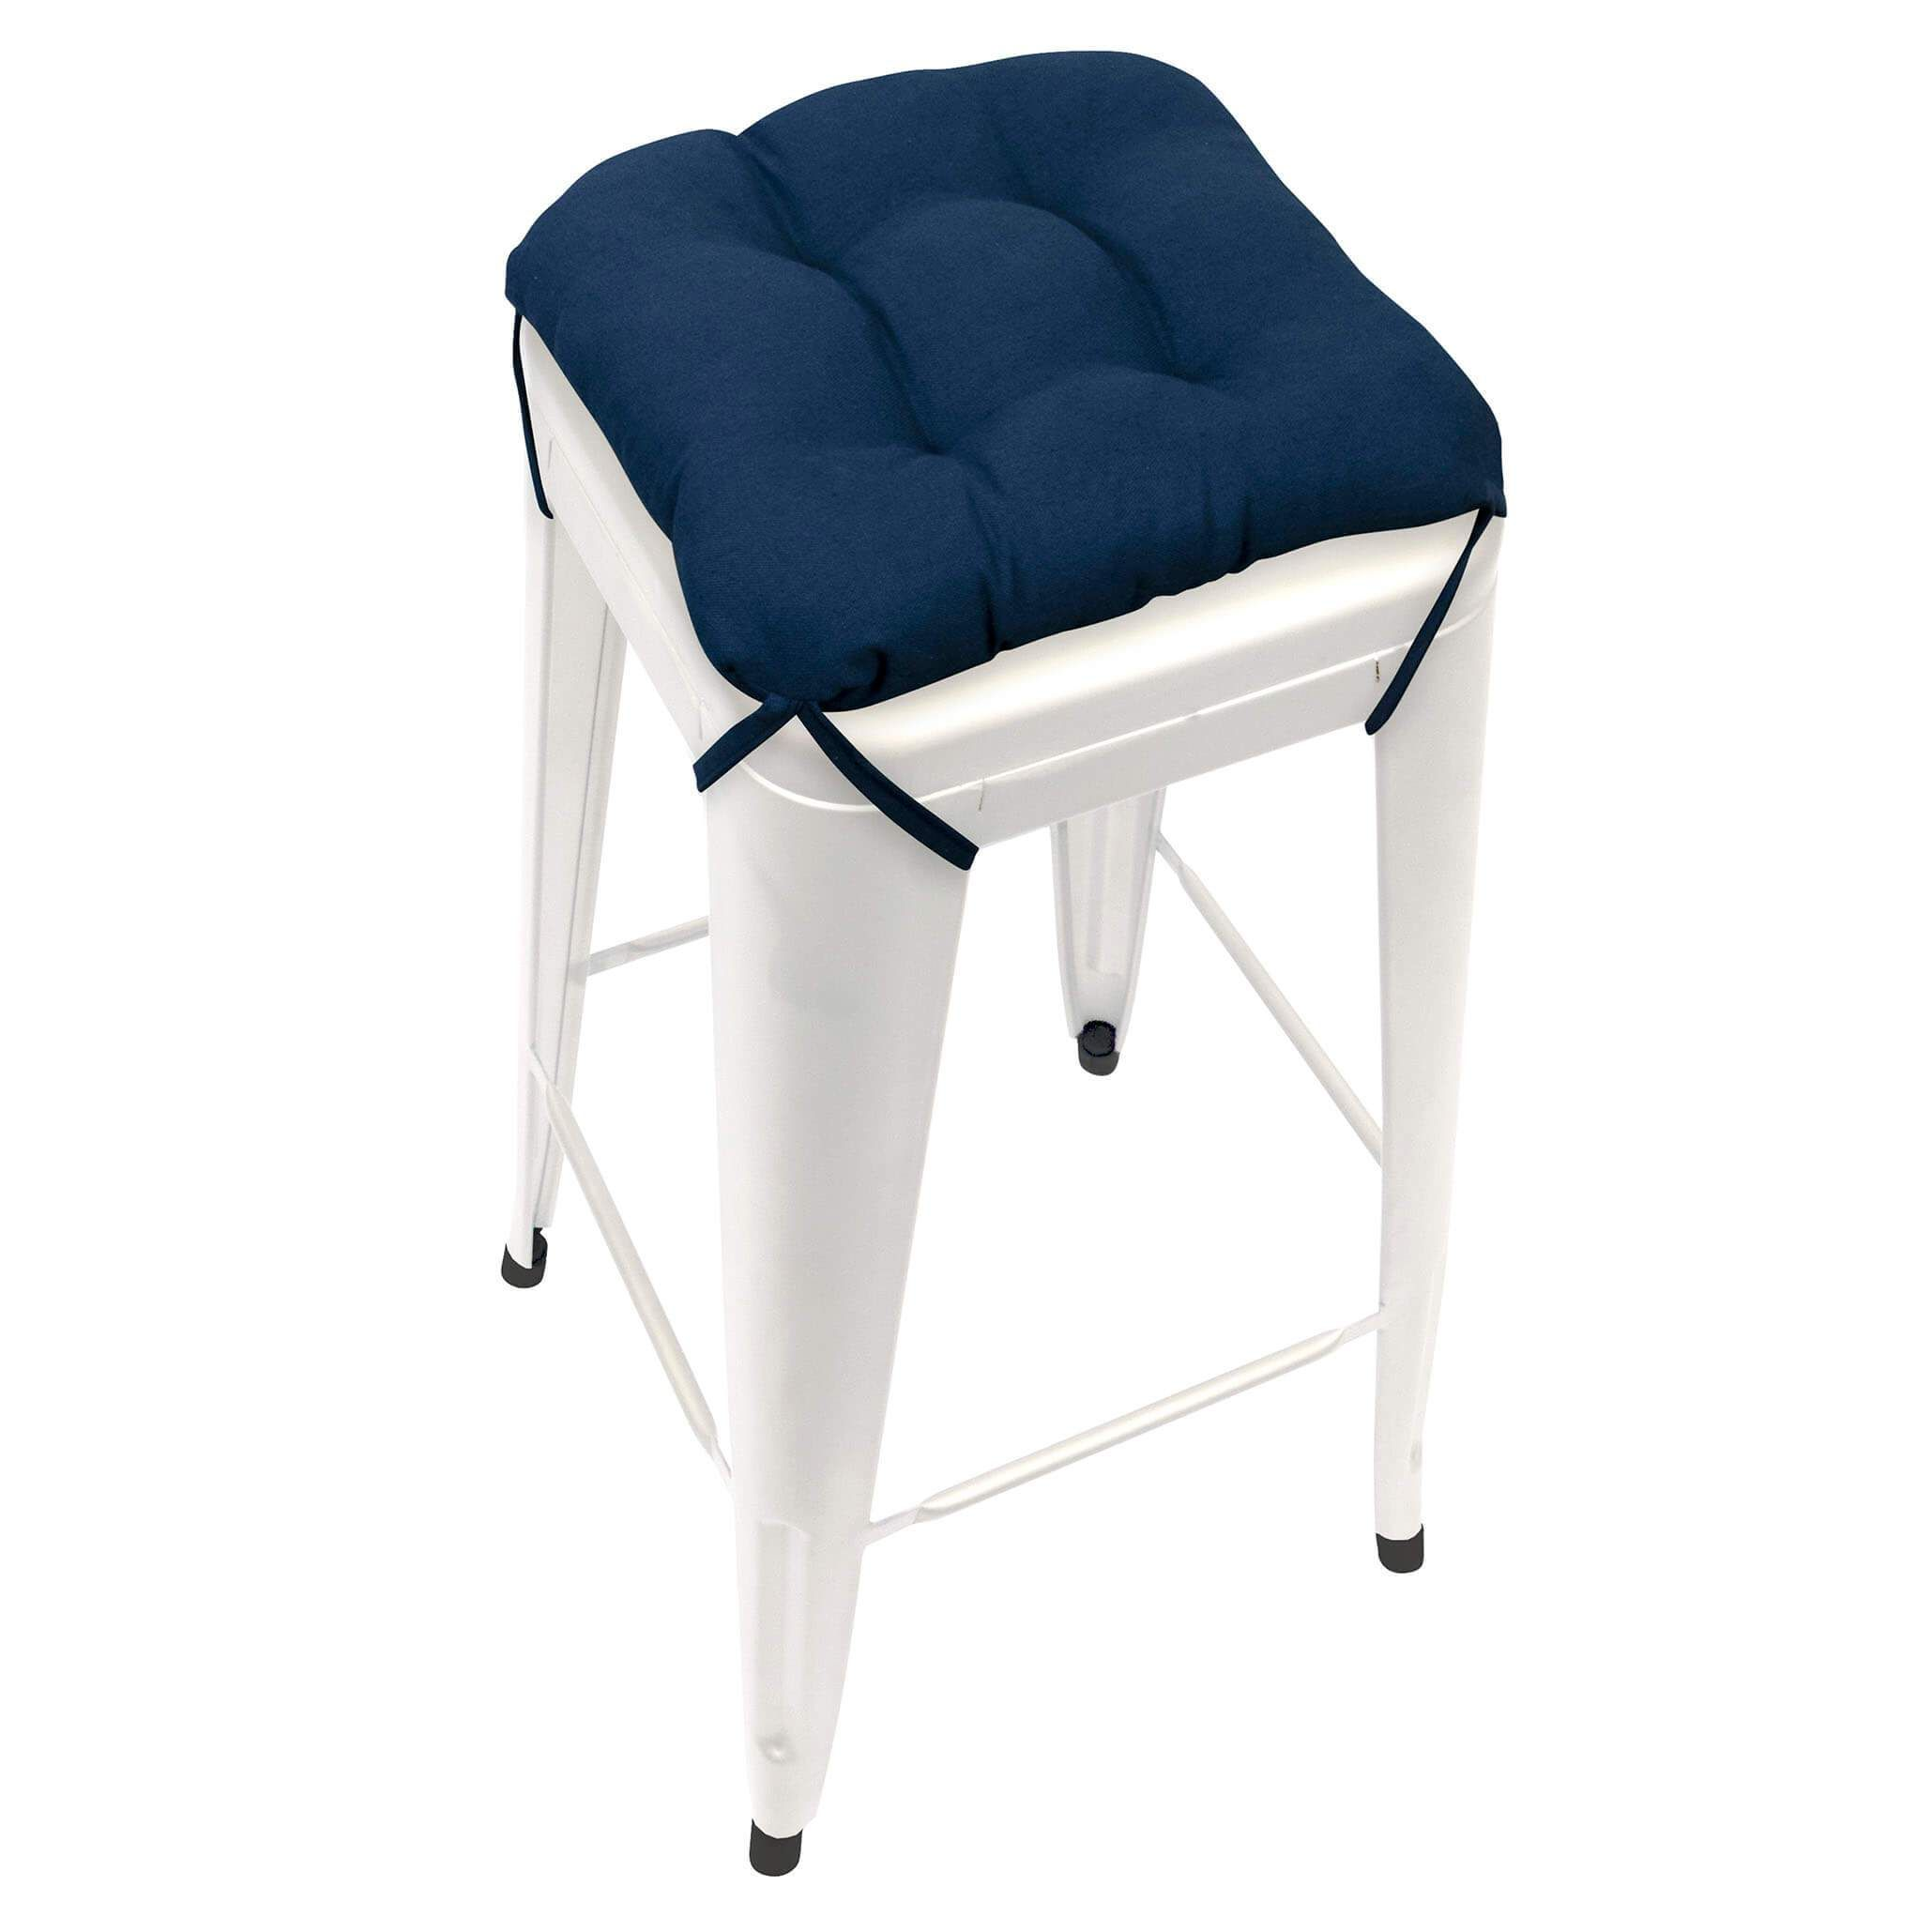 Cotton Duck Navy Blue Square Industrial Bar Stool Cushion 12 Bar Stool Cushions Industrial Bar Stools Bar Stools